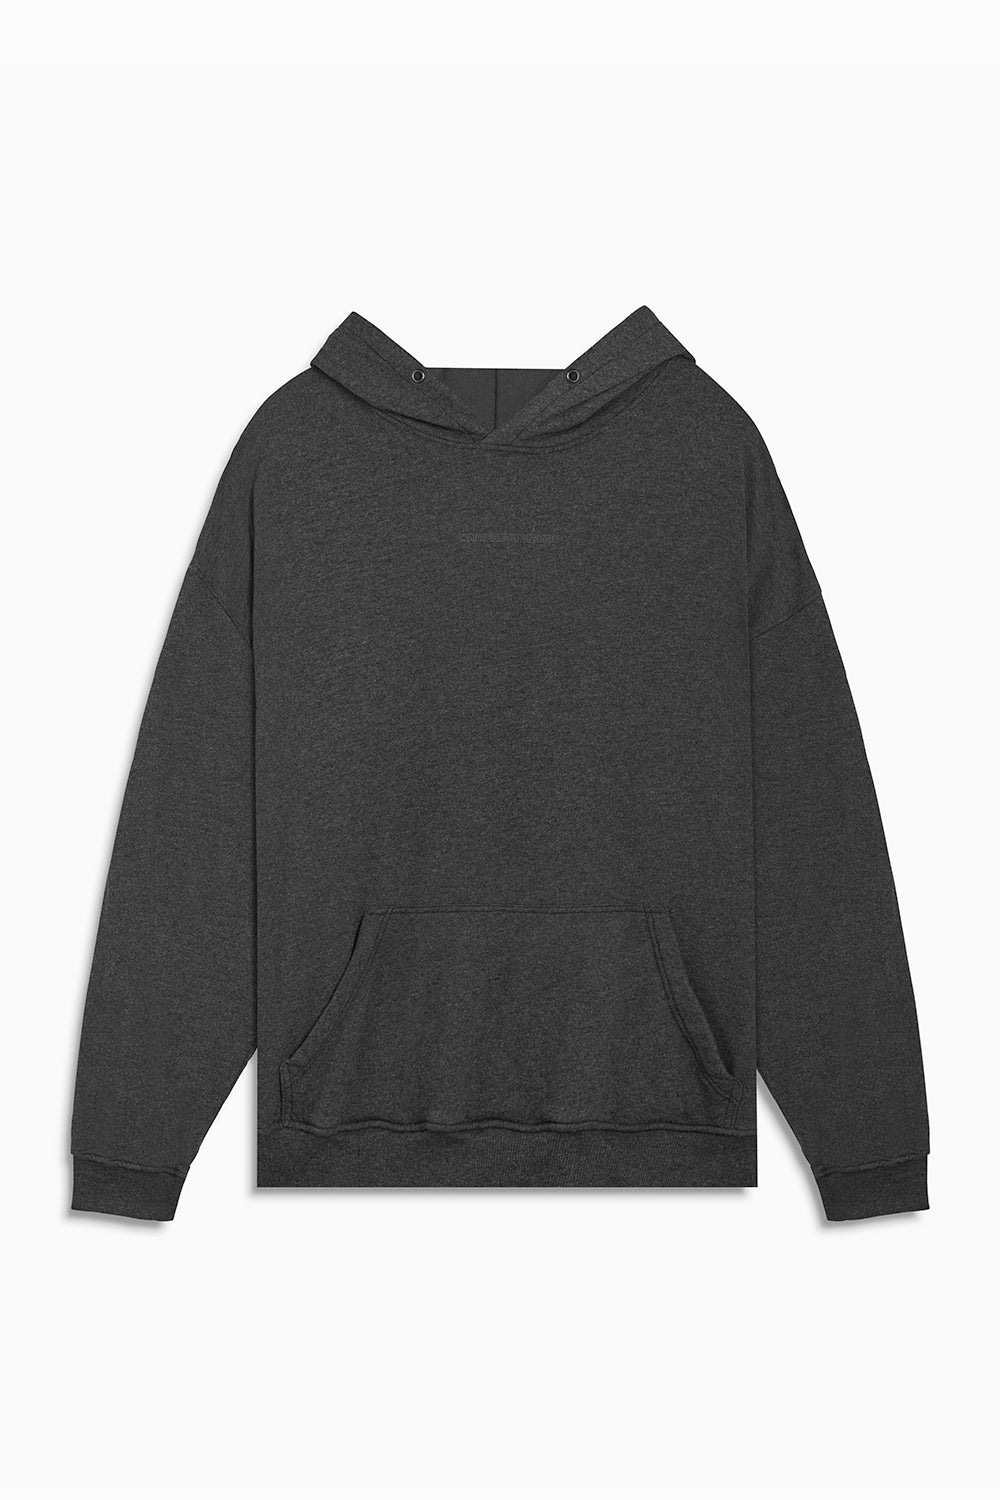 loop terry standard hoodie / black heather